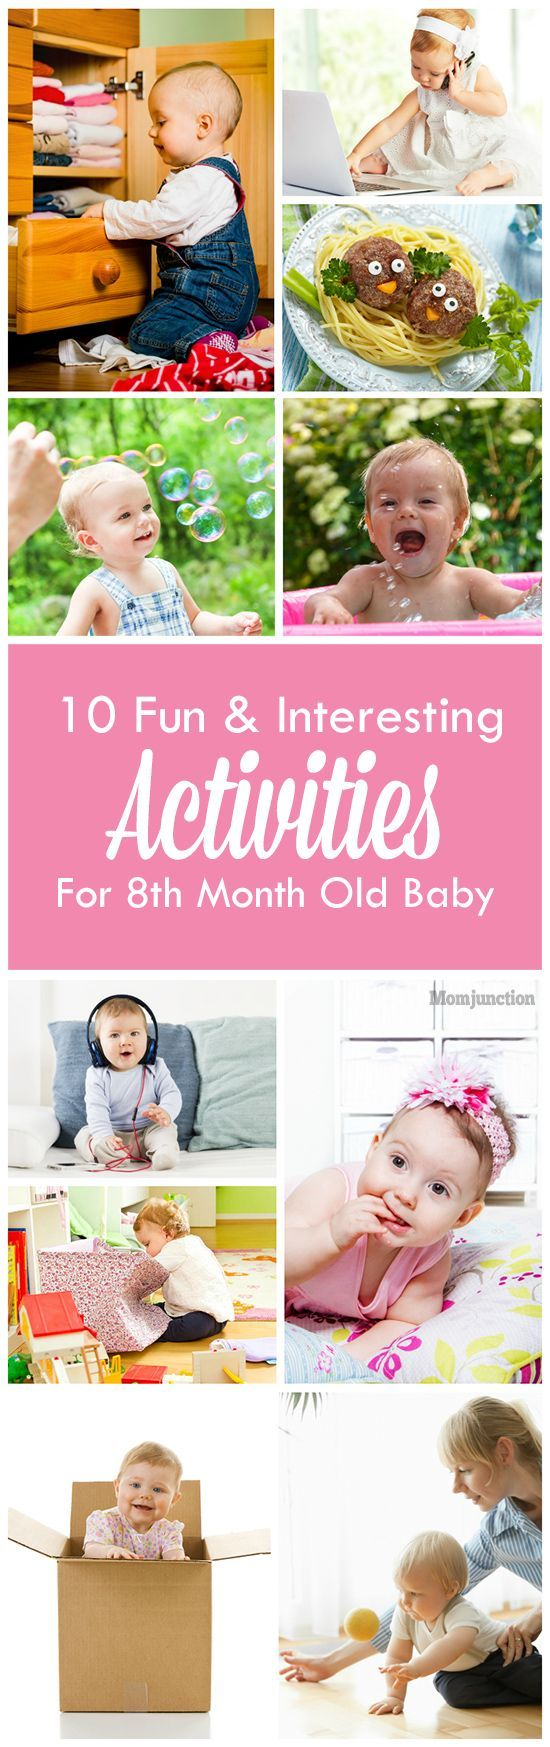 Now that your baby is 8 months old, he may be trying to hold anything within his reach. Why not introduce these 4 learning activities for 8 month old baby..